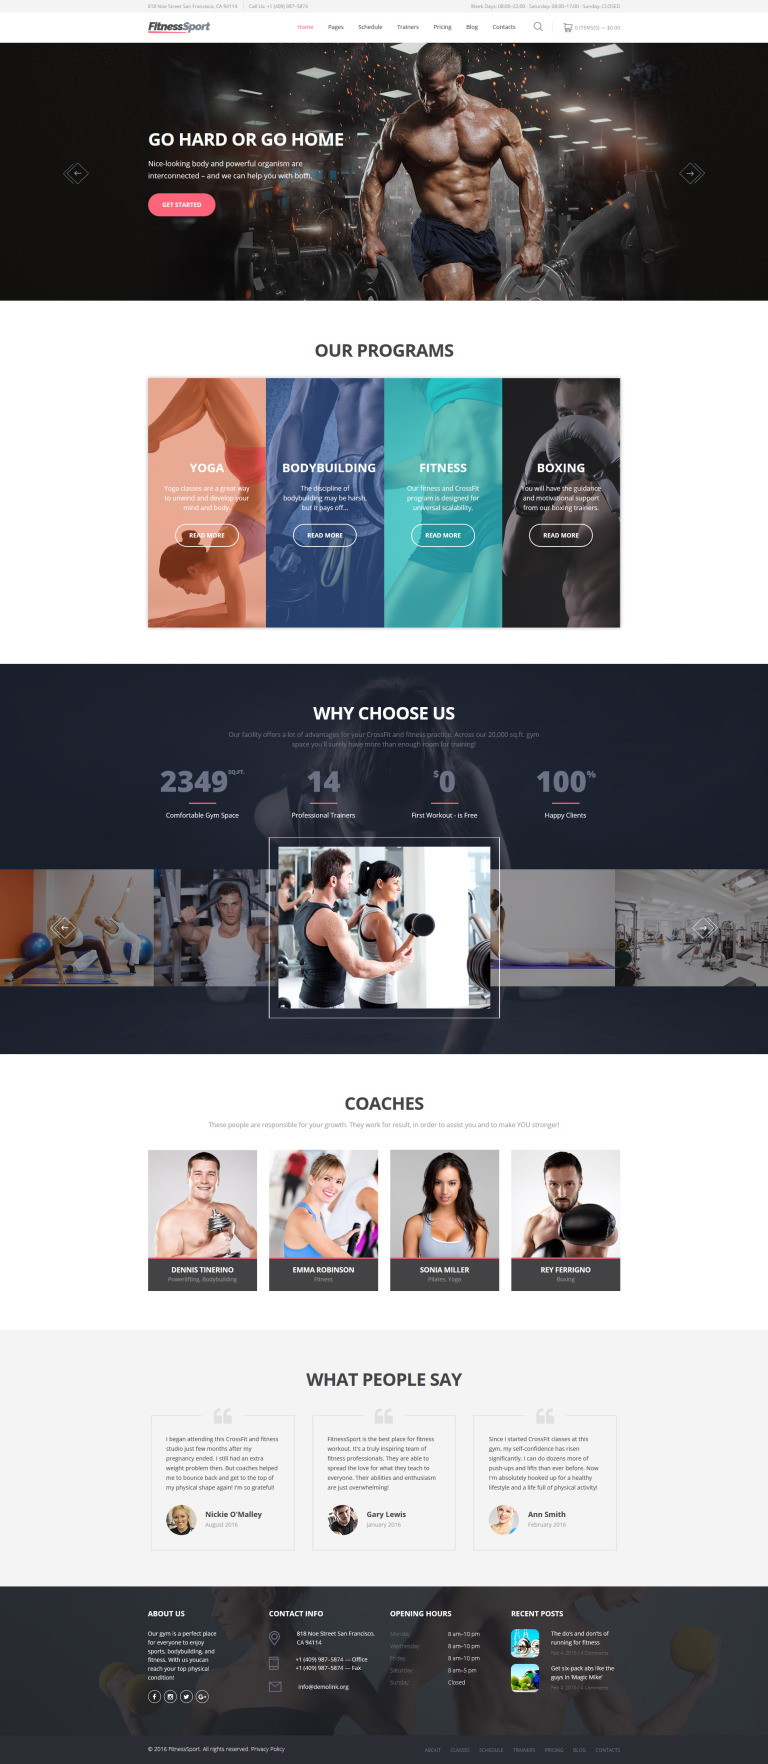 FitnessSport Website Template New Screenshots BIG